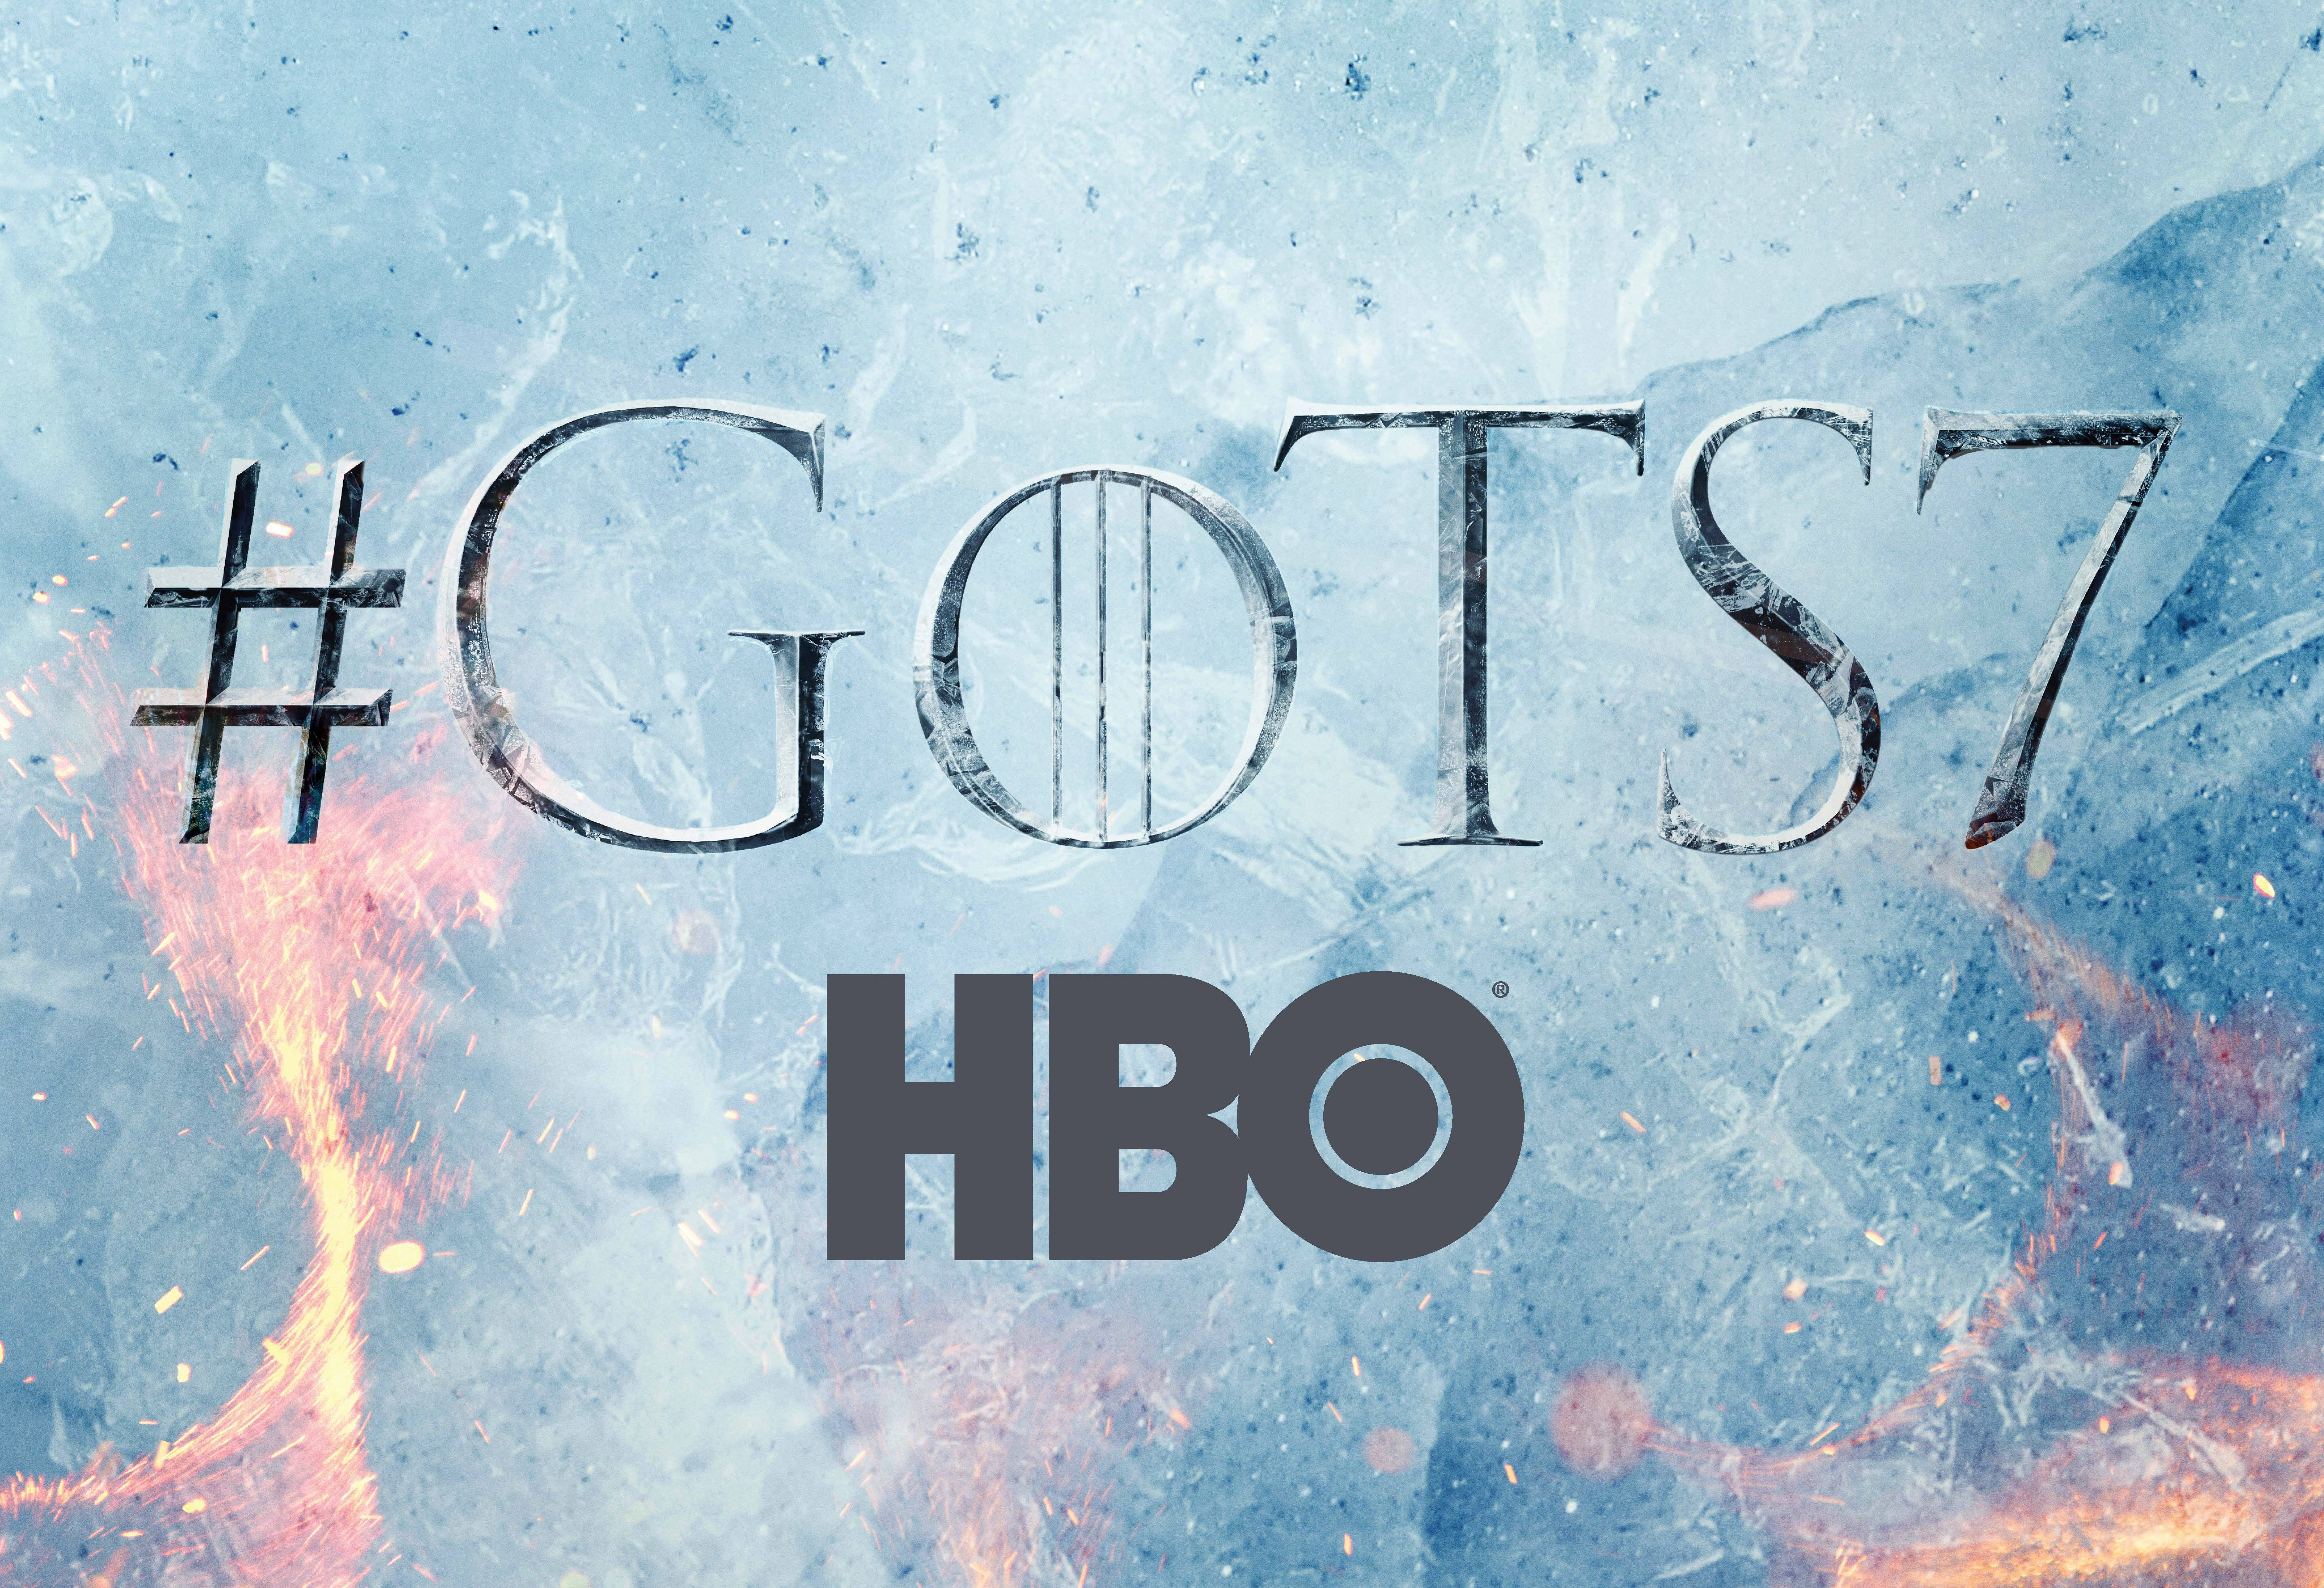 Game Of Thrones Season 7 Poster 8k Hd Tv Shows 4k Wallpapers